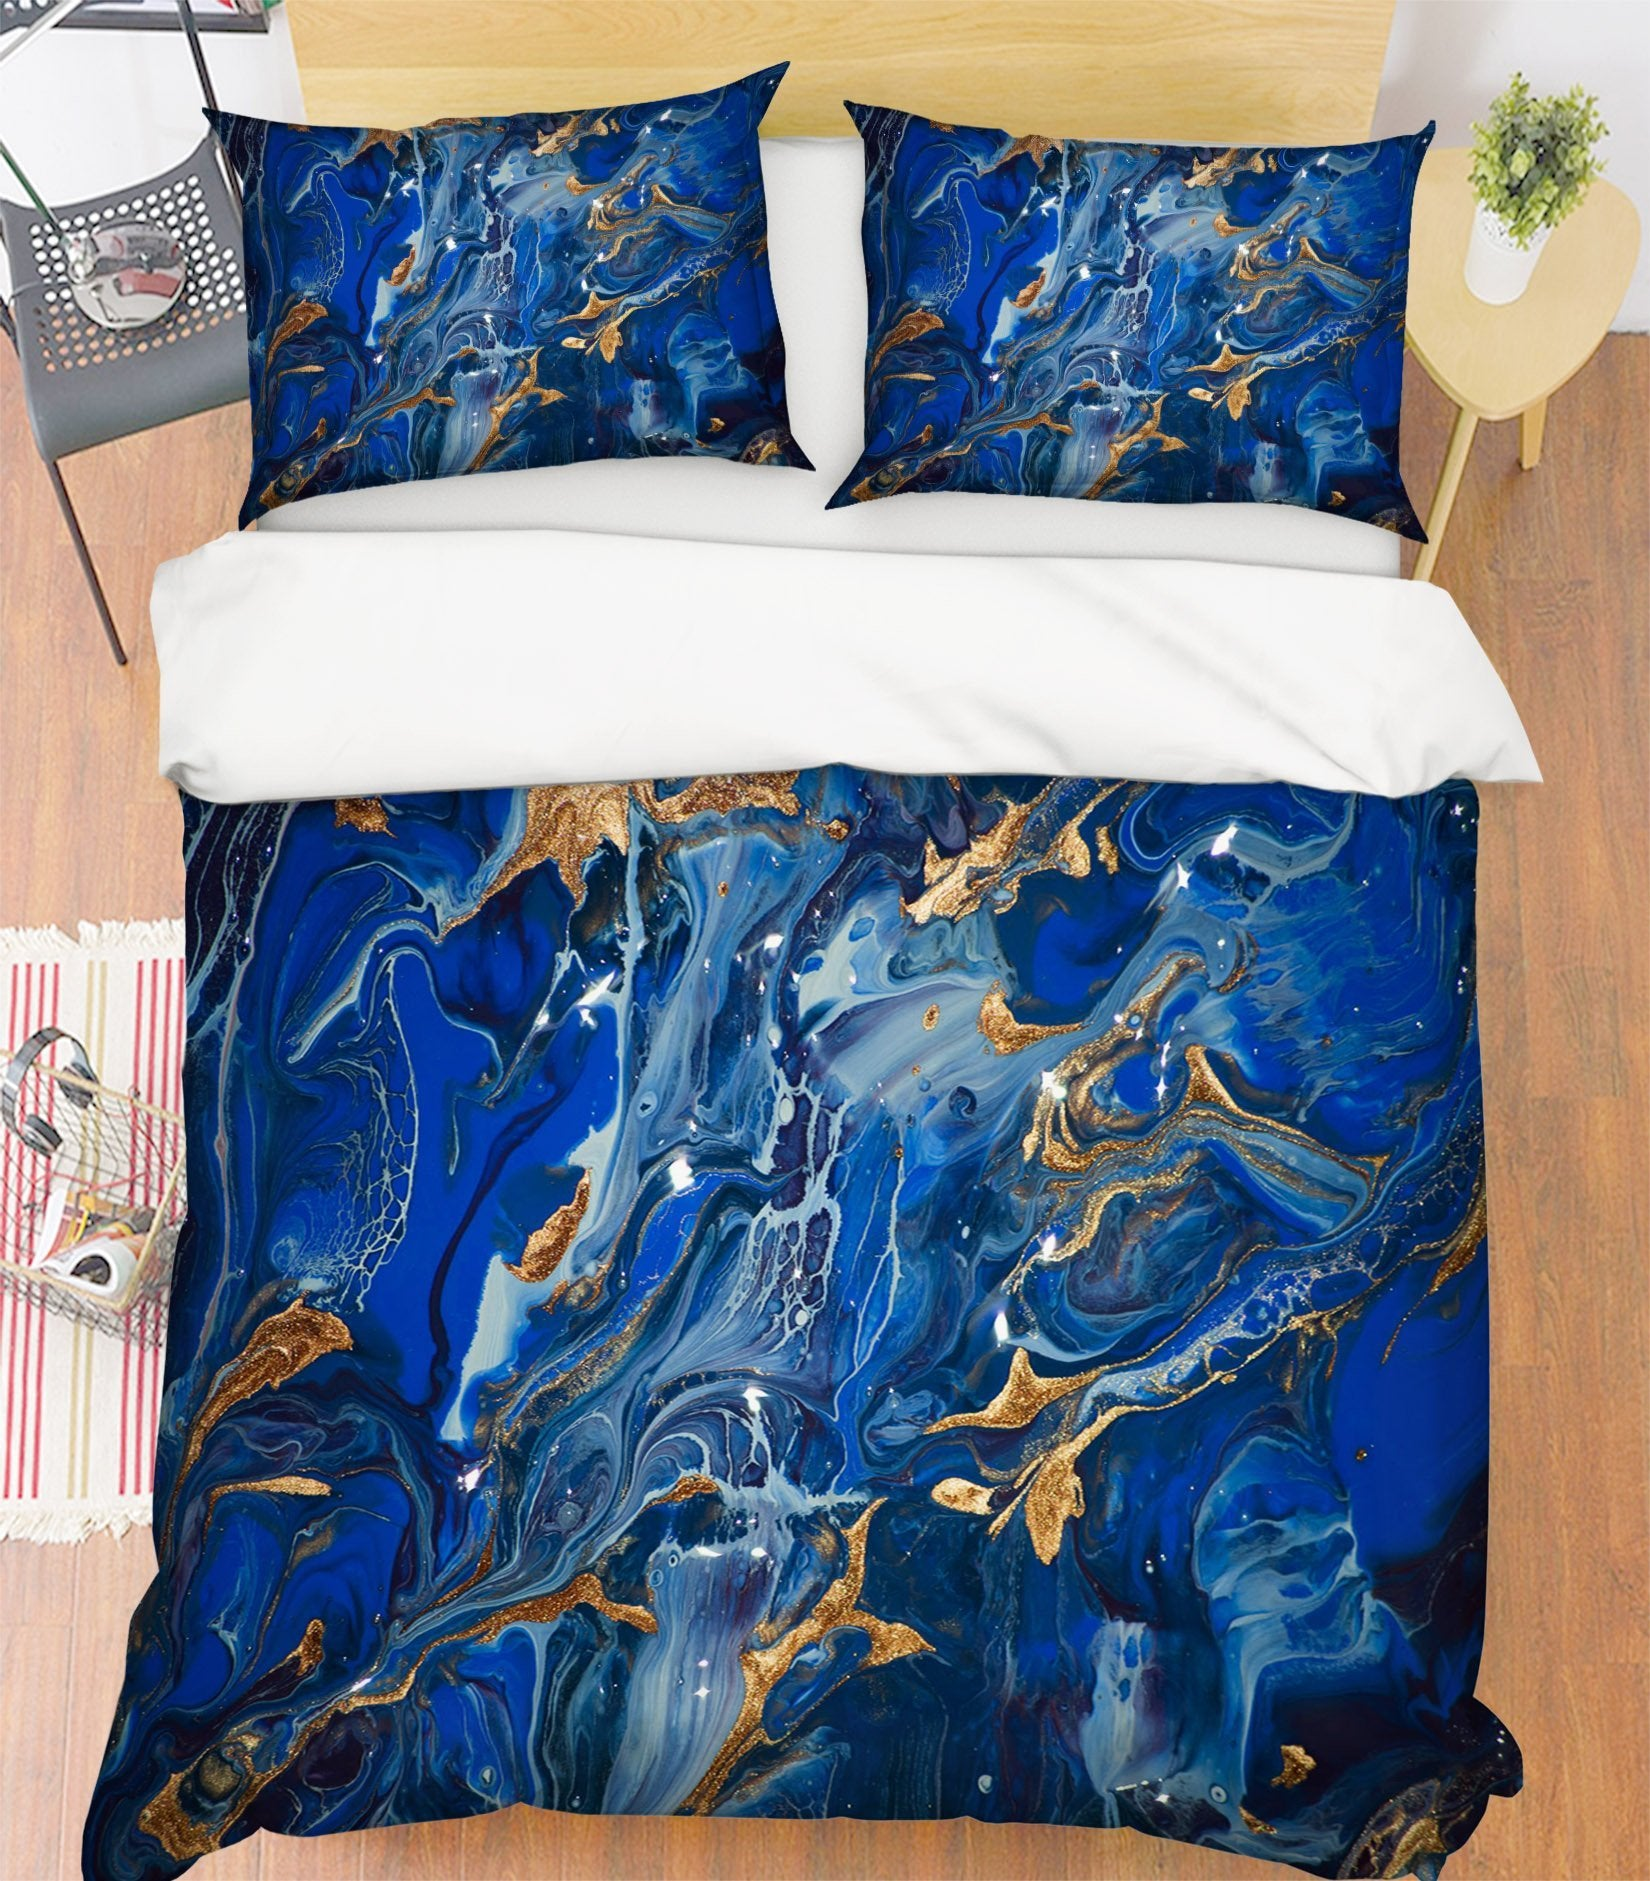 3D Dark Blue Gold Powder 050 Bed Pillowcases Quilt Wallpaper AJ Wallpaper